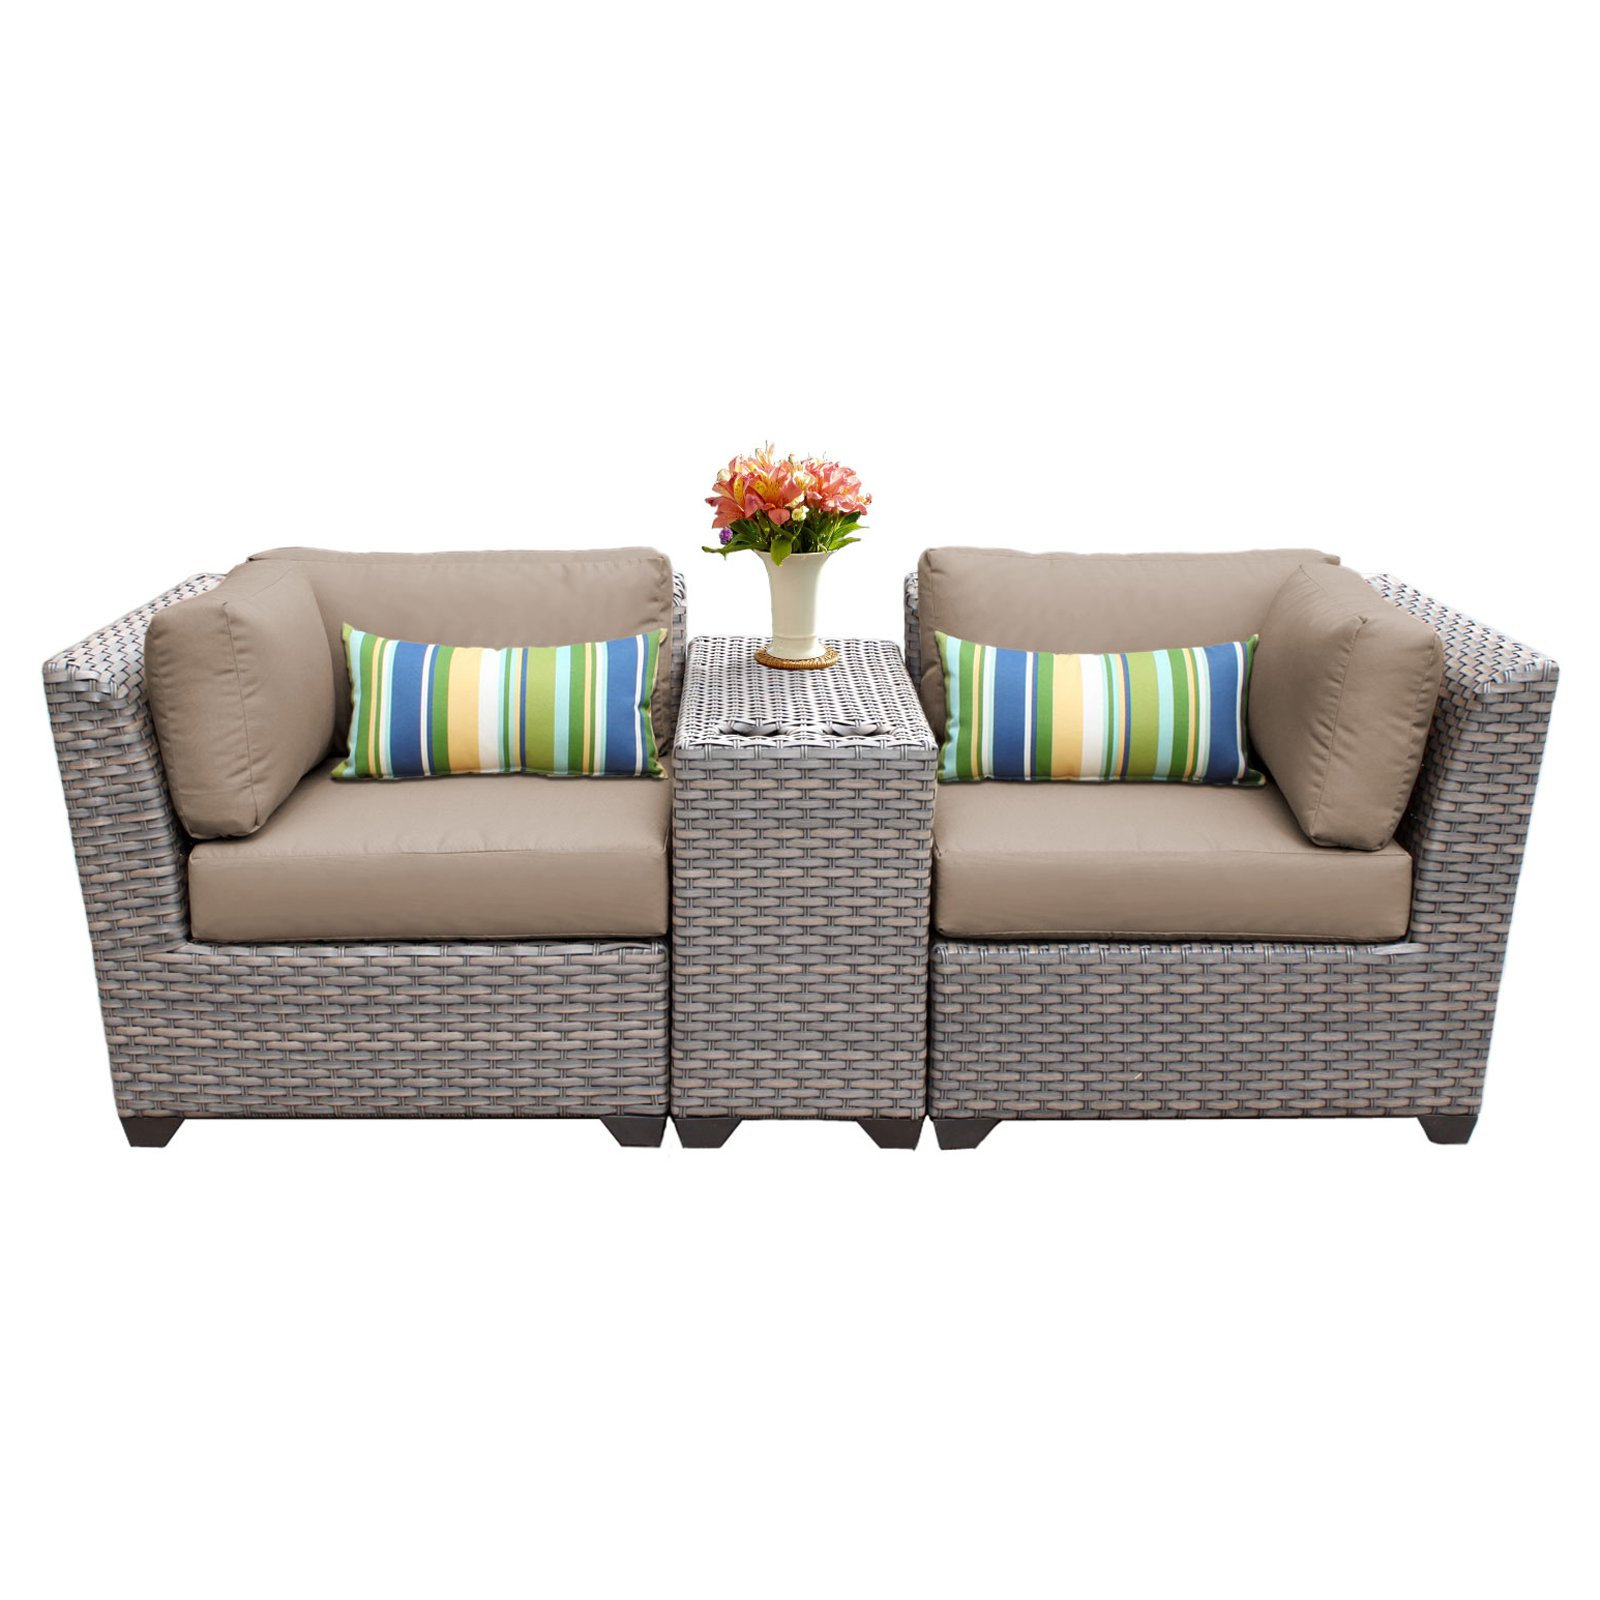 tk classics florence wicker 3 patio conversation set on 3 Piece Patio Cushion Set id=47385